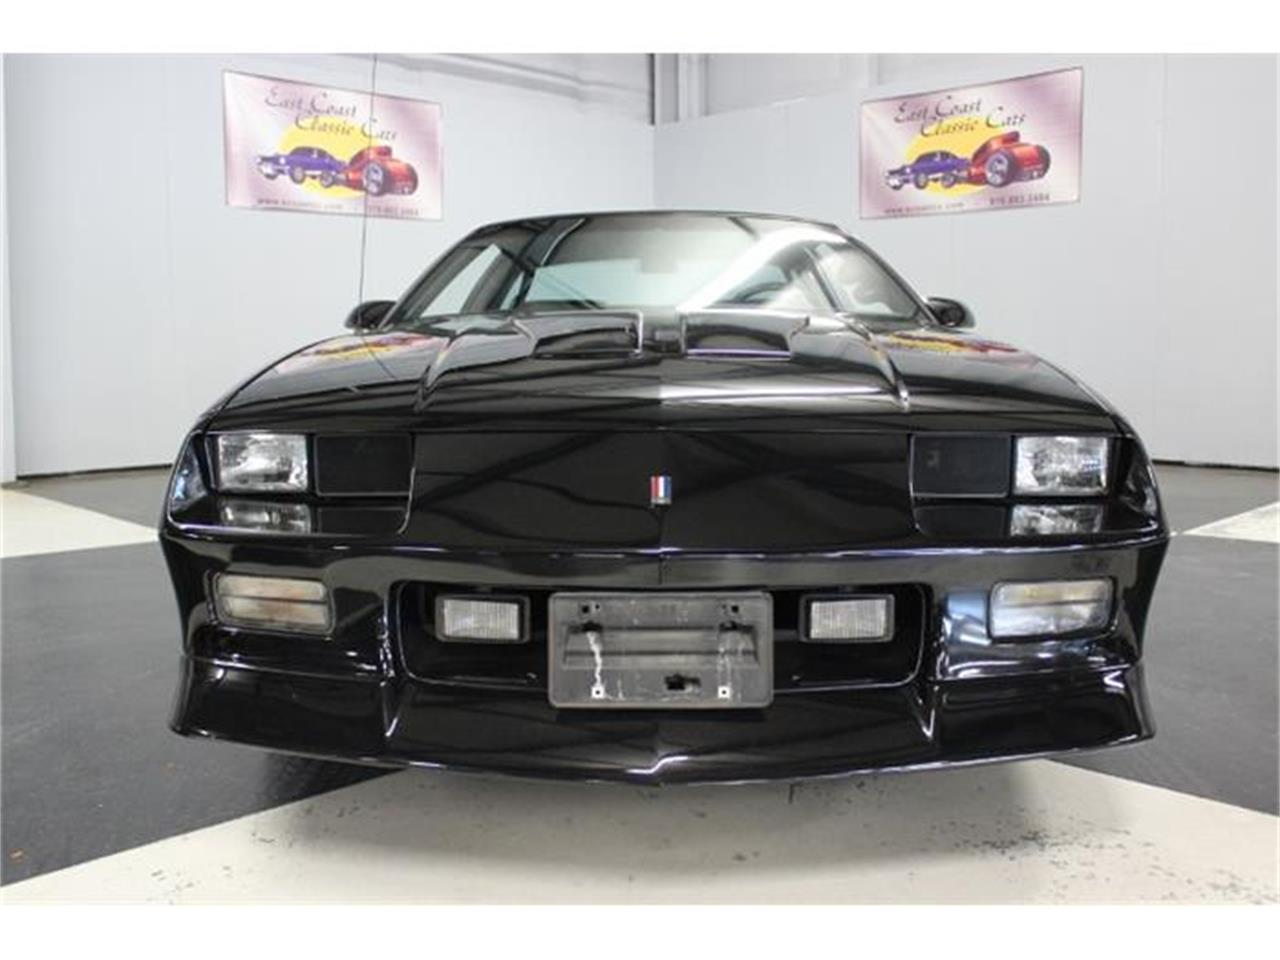 Large Picture of 1991 Camaro Z28 located in Lillington North Carolina - $52,000.00 Offered by East Coast Classic Cars - GPGQ